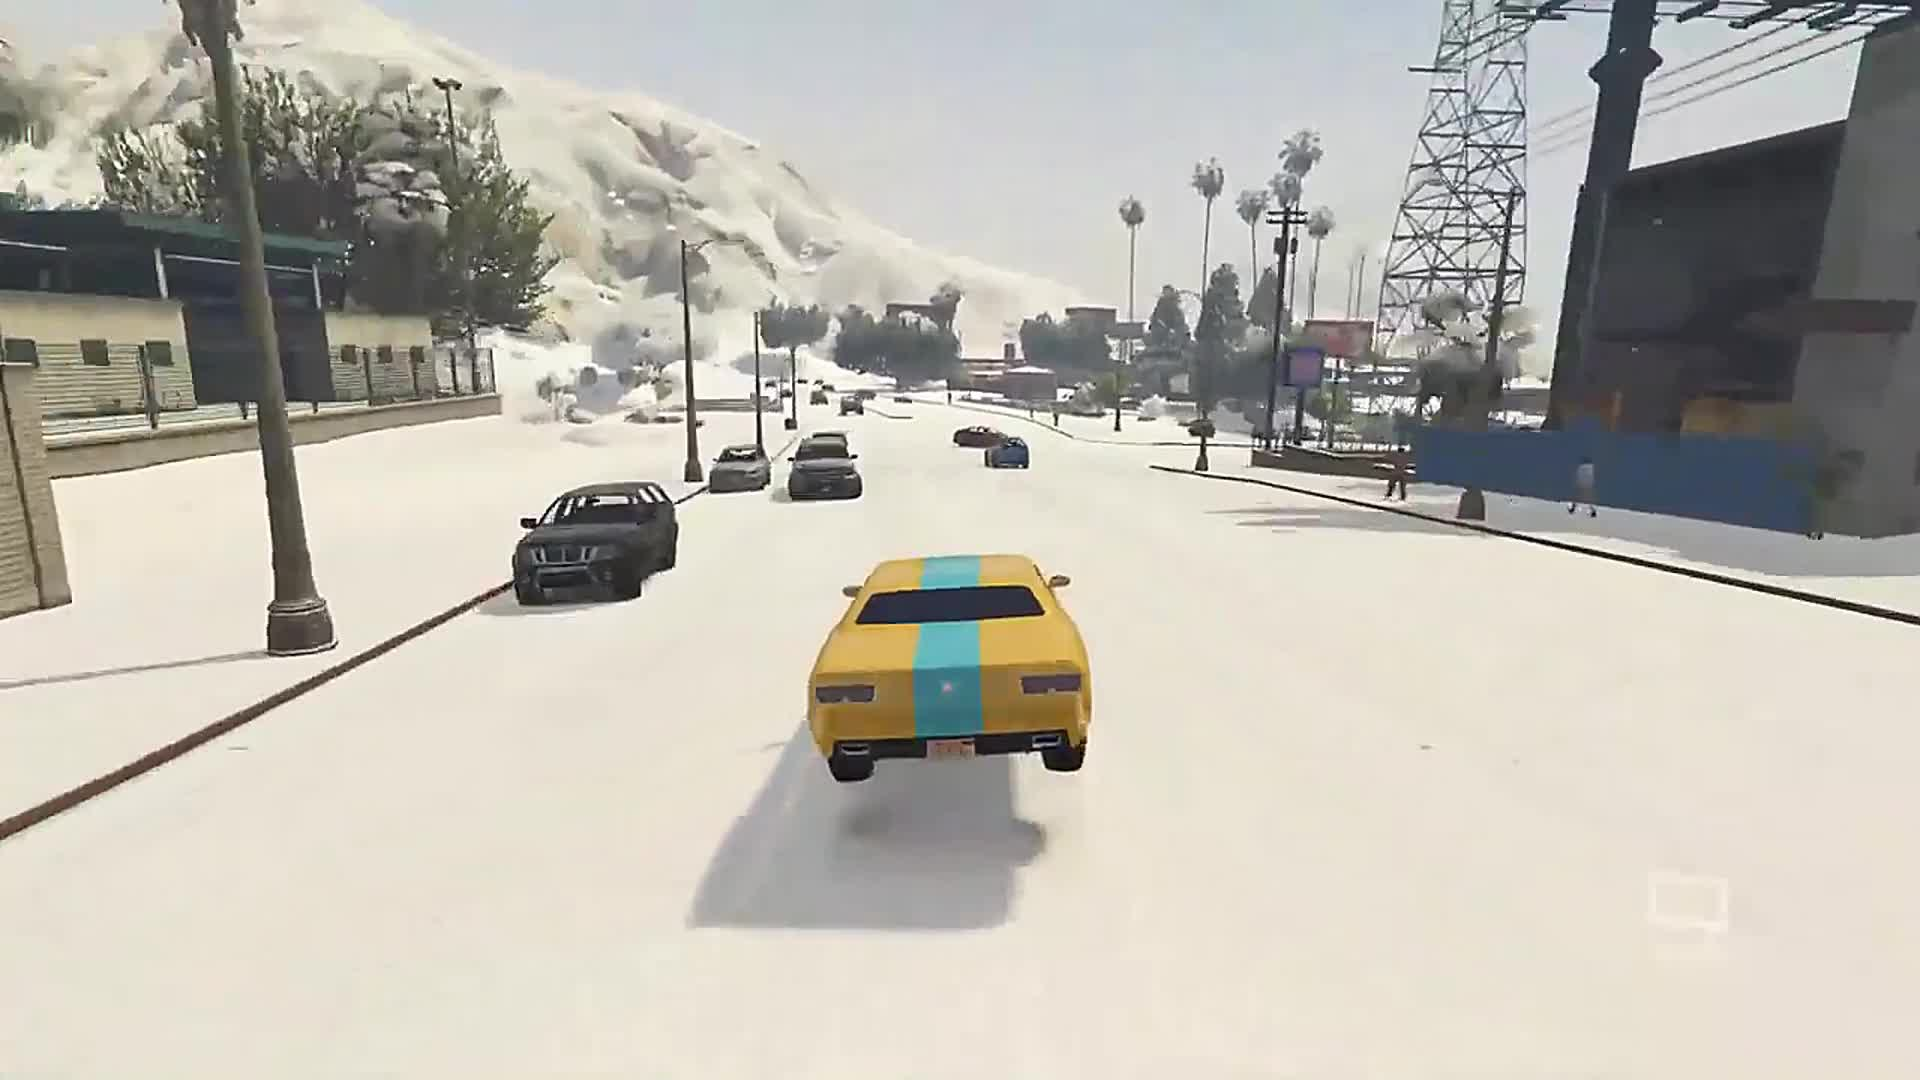 gaming, gtav, inverse power mod, modding, no mass toggle menyoo mod, GTAV never gets old for me with driving mods GIFs